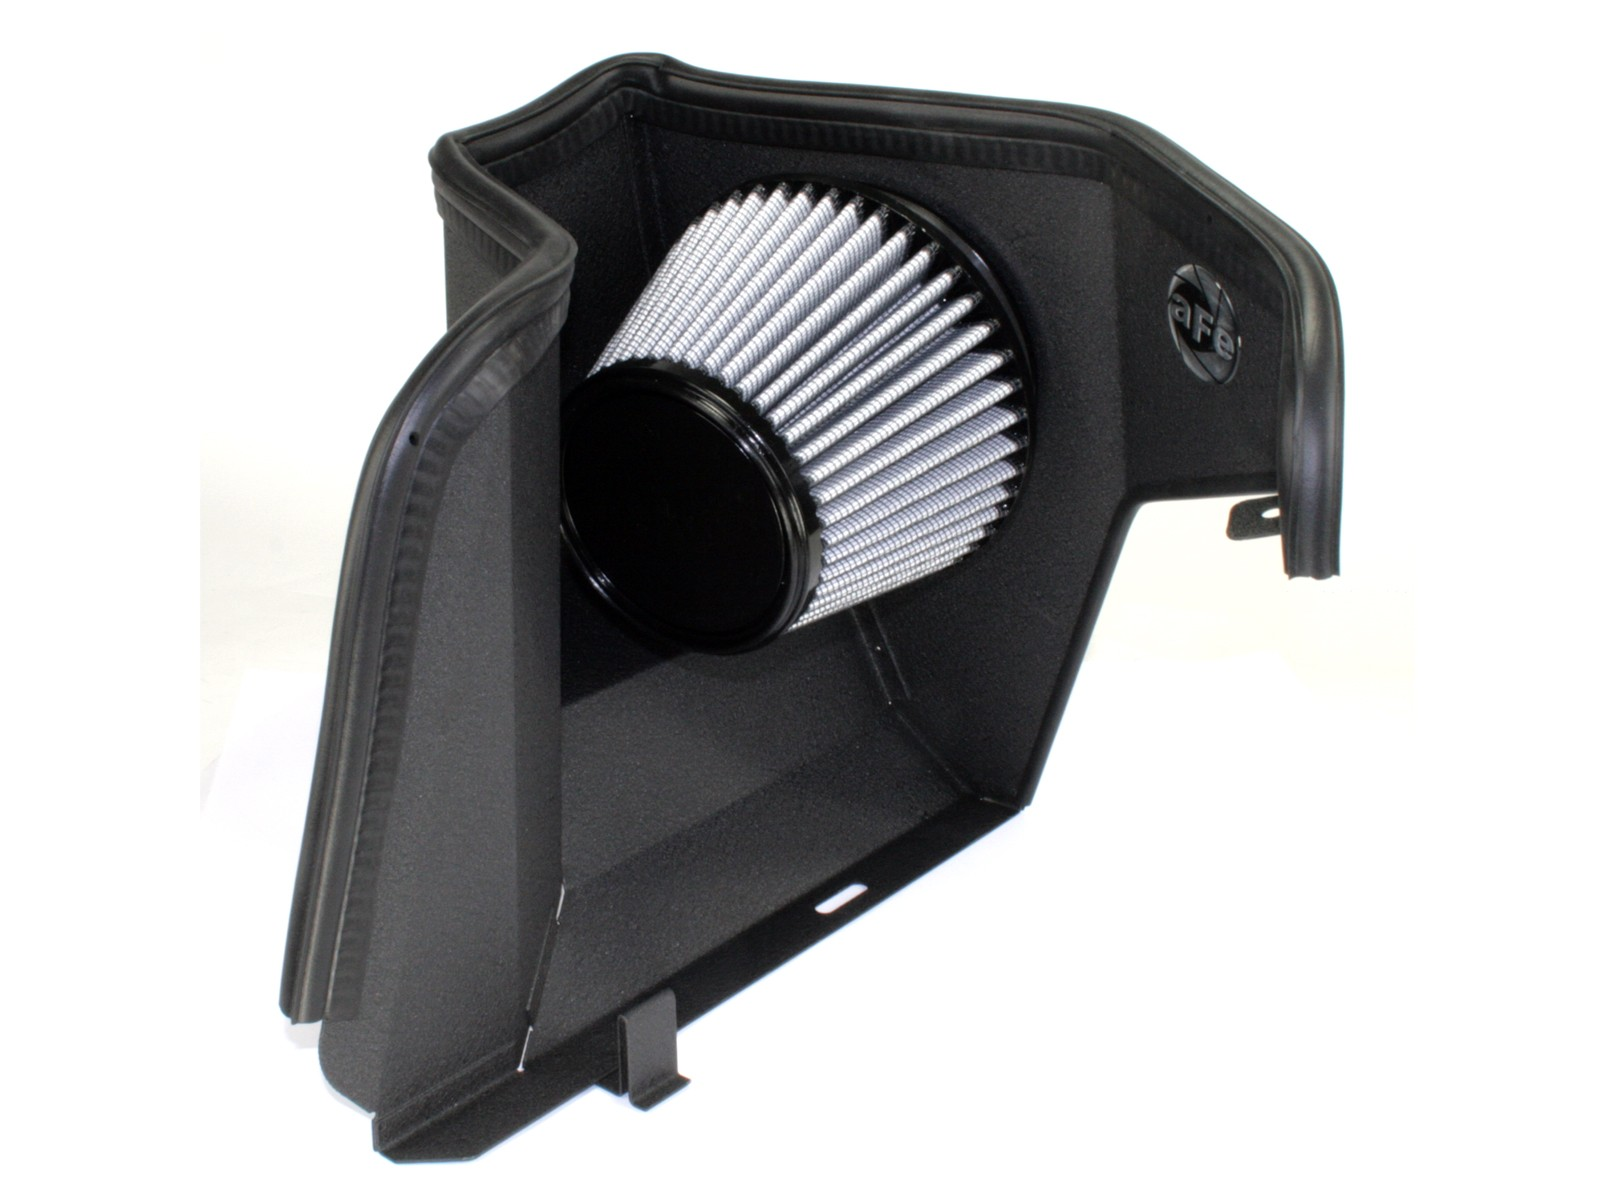 aFe POWER 51-11951 Magnum FORCE Stage-1 Pro DRY S Cold Air Intake System